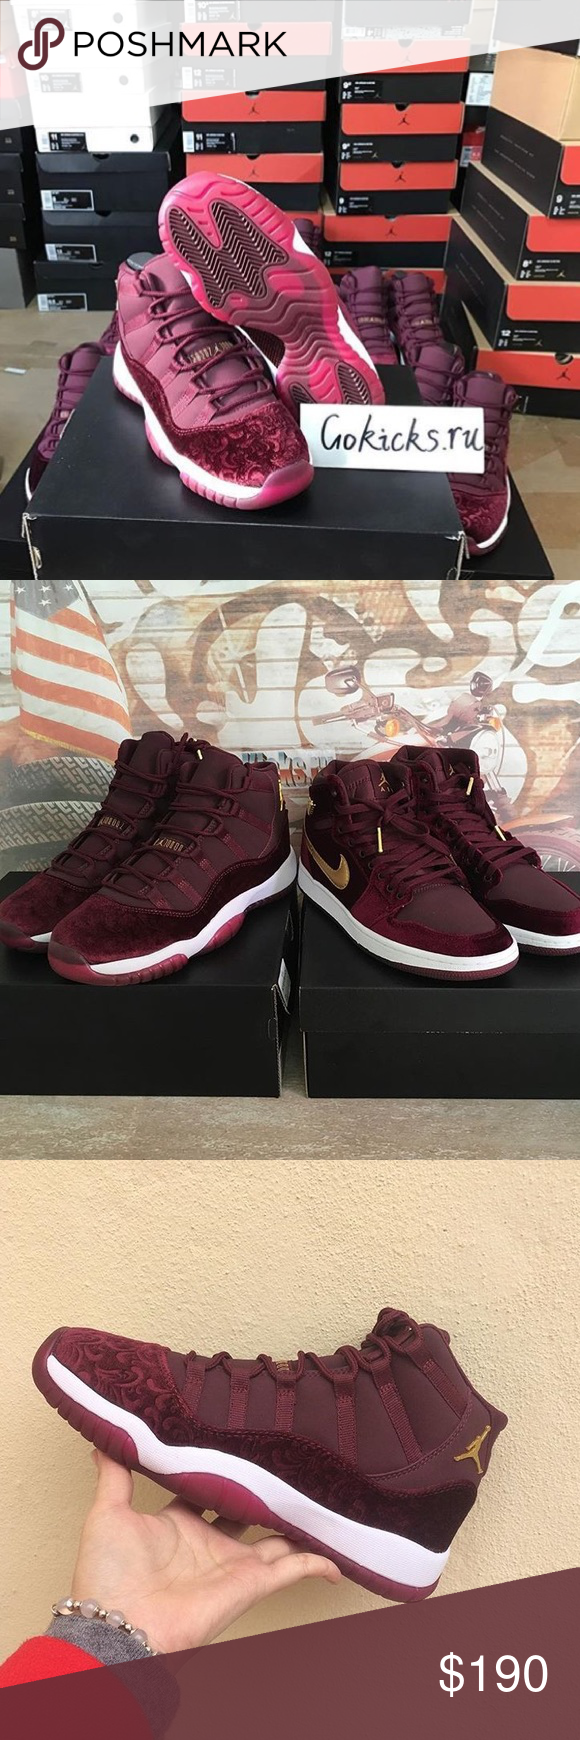 "362dde90b00 Spotted while shopping on Poshmark: Air Jordan Retro 11 ""Heiress""! #poshmark  #fashion #shopping #style #Jordan #Shoes"